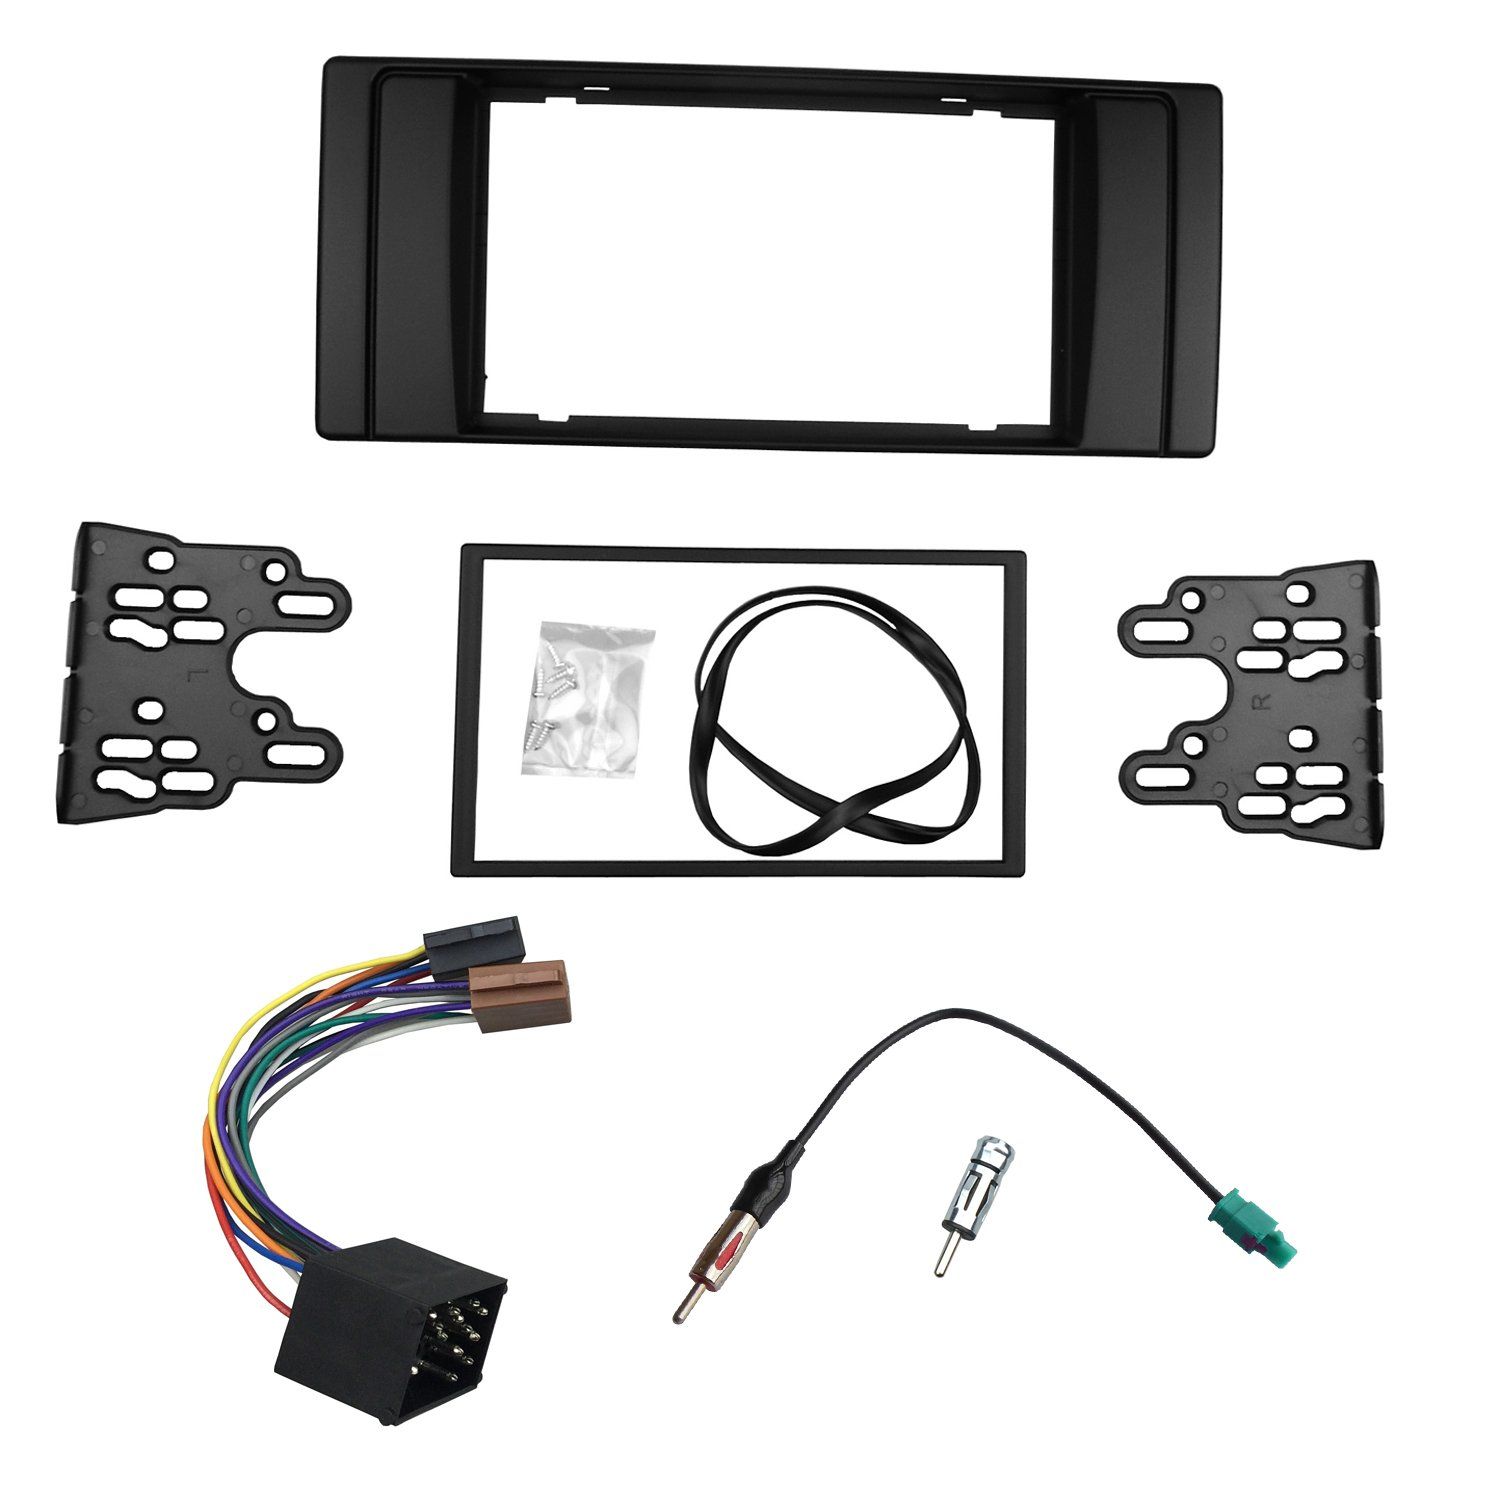 Dkmus Dash Installation Trim Kit For Bmw 5 Series E39 Amazoncom Stereo Install Ford 500 06 2006 Car Radio Wiring 1995 2003 X5 E53 1999 Facia Double Din Dvd With Harness Antenna